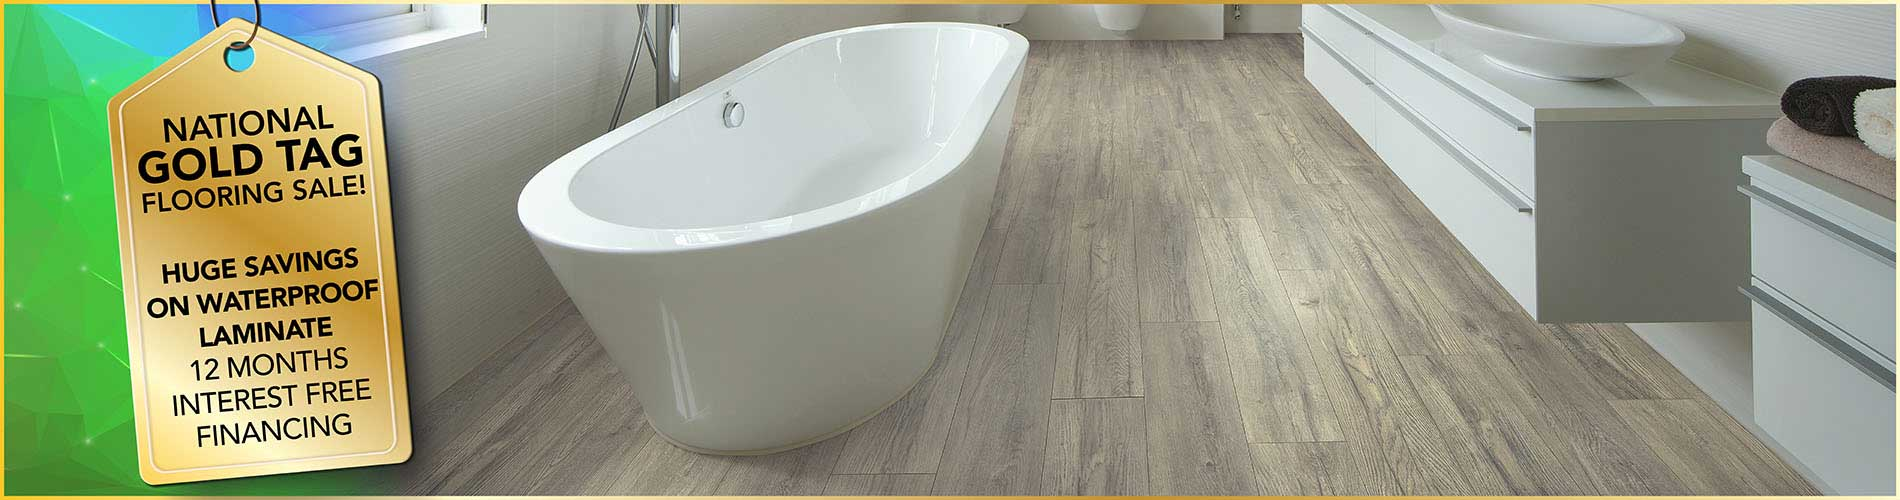 Get huge savings on laminate floors during our National Gold Tag Sale at Ultimate Flooring & Paint